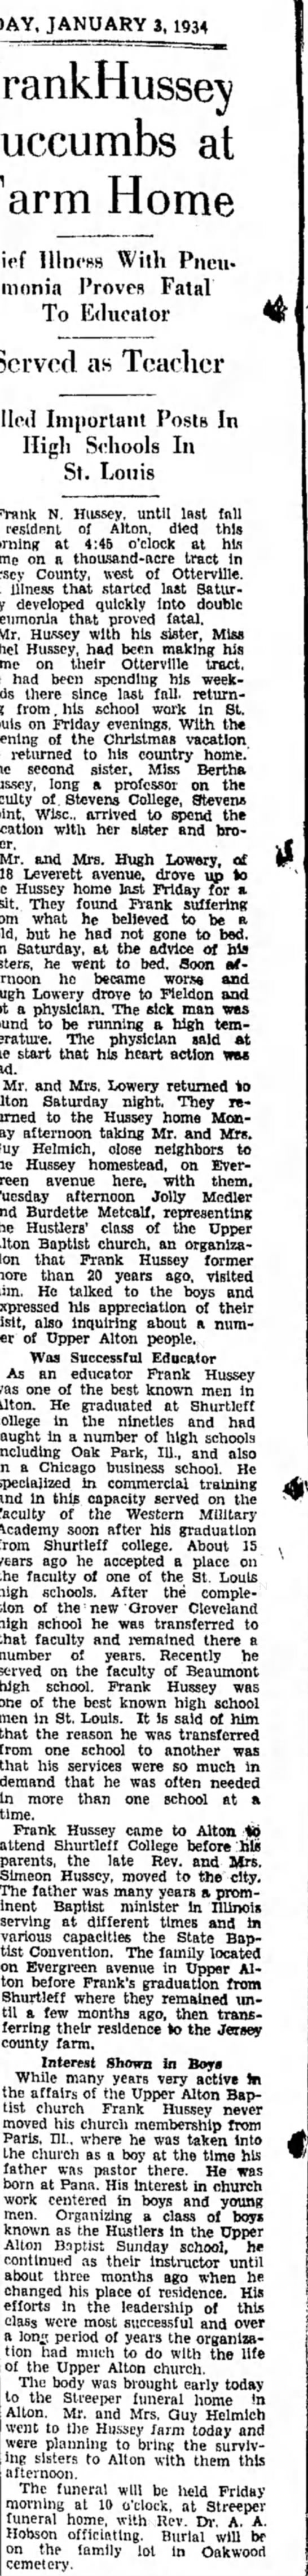 Mr and Mrs. Helmick 1934 - JANUARY 3,1934 FrankHussey Succumbs at Farm...